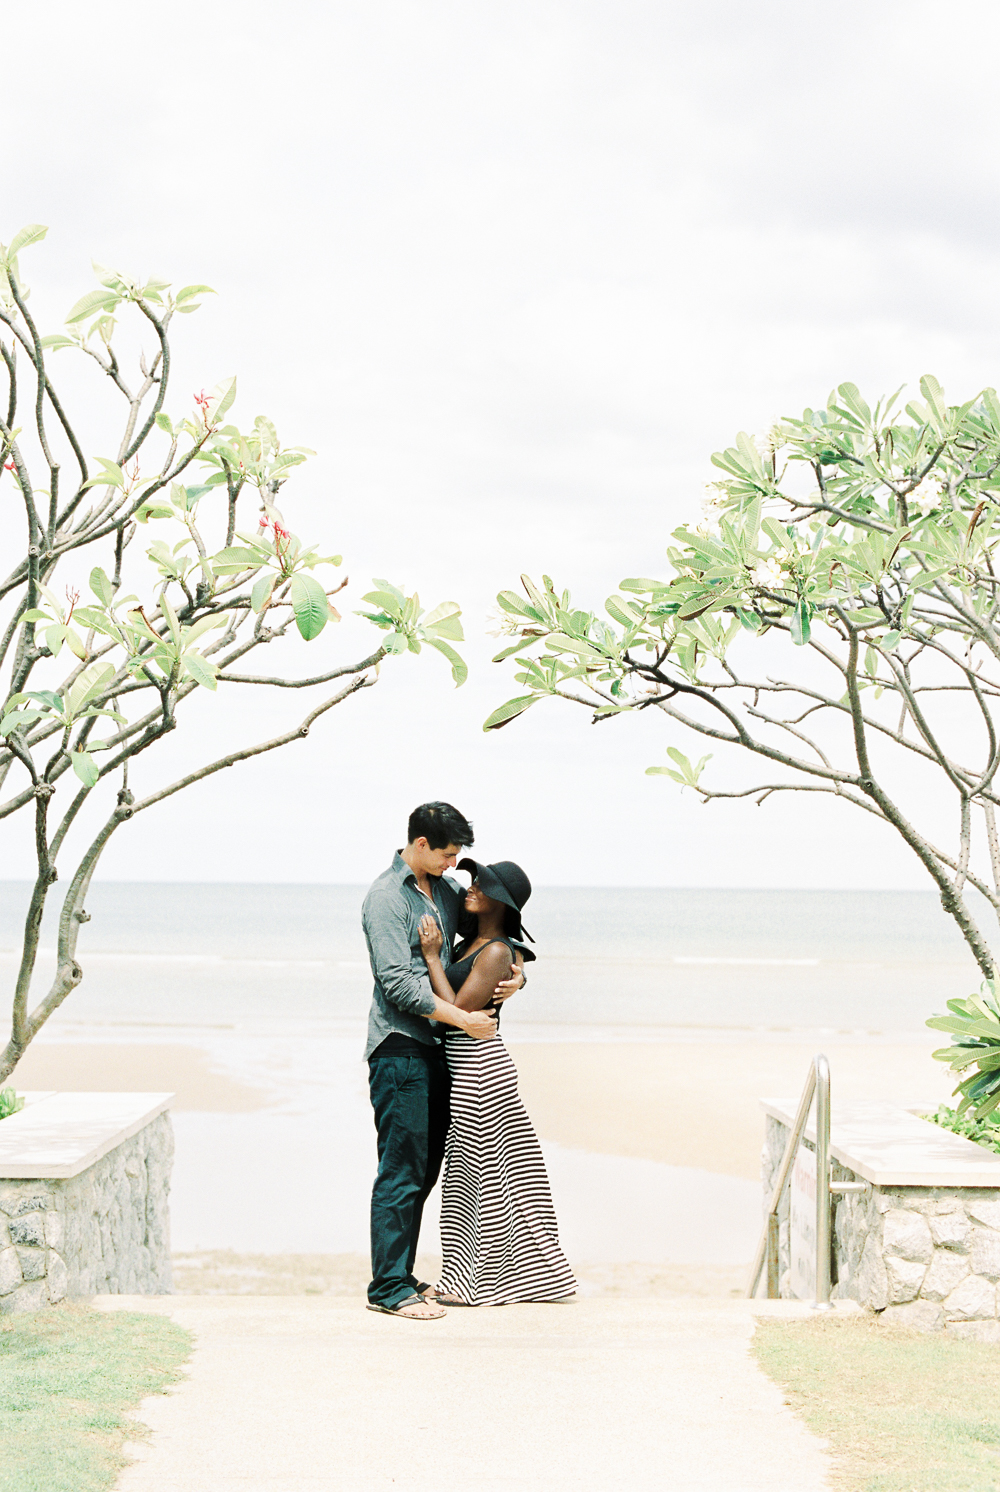 Chen Sands Photography engagement photographer thailand -5.jpg